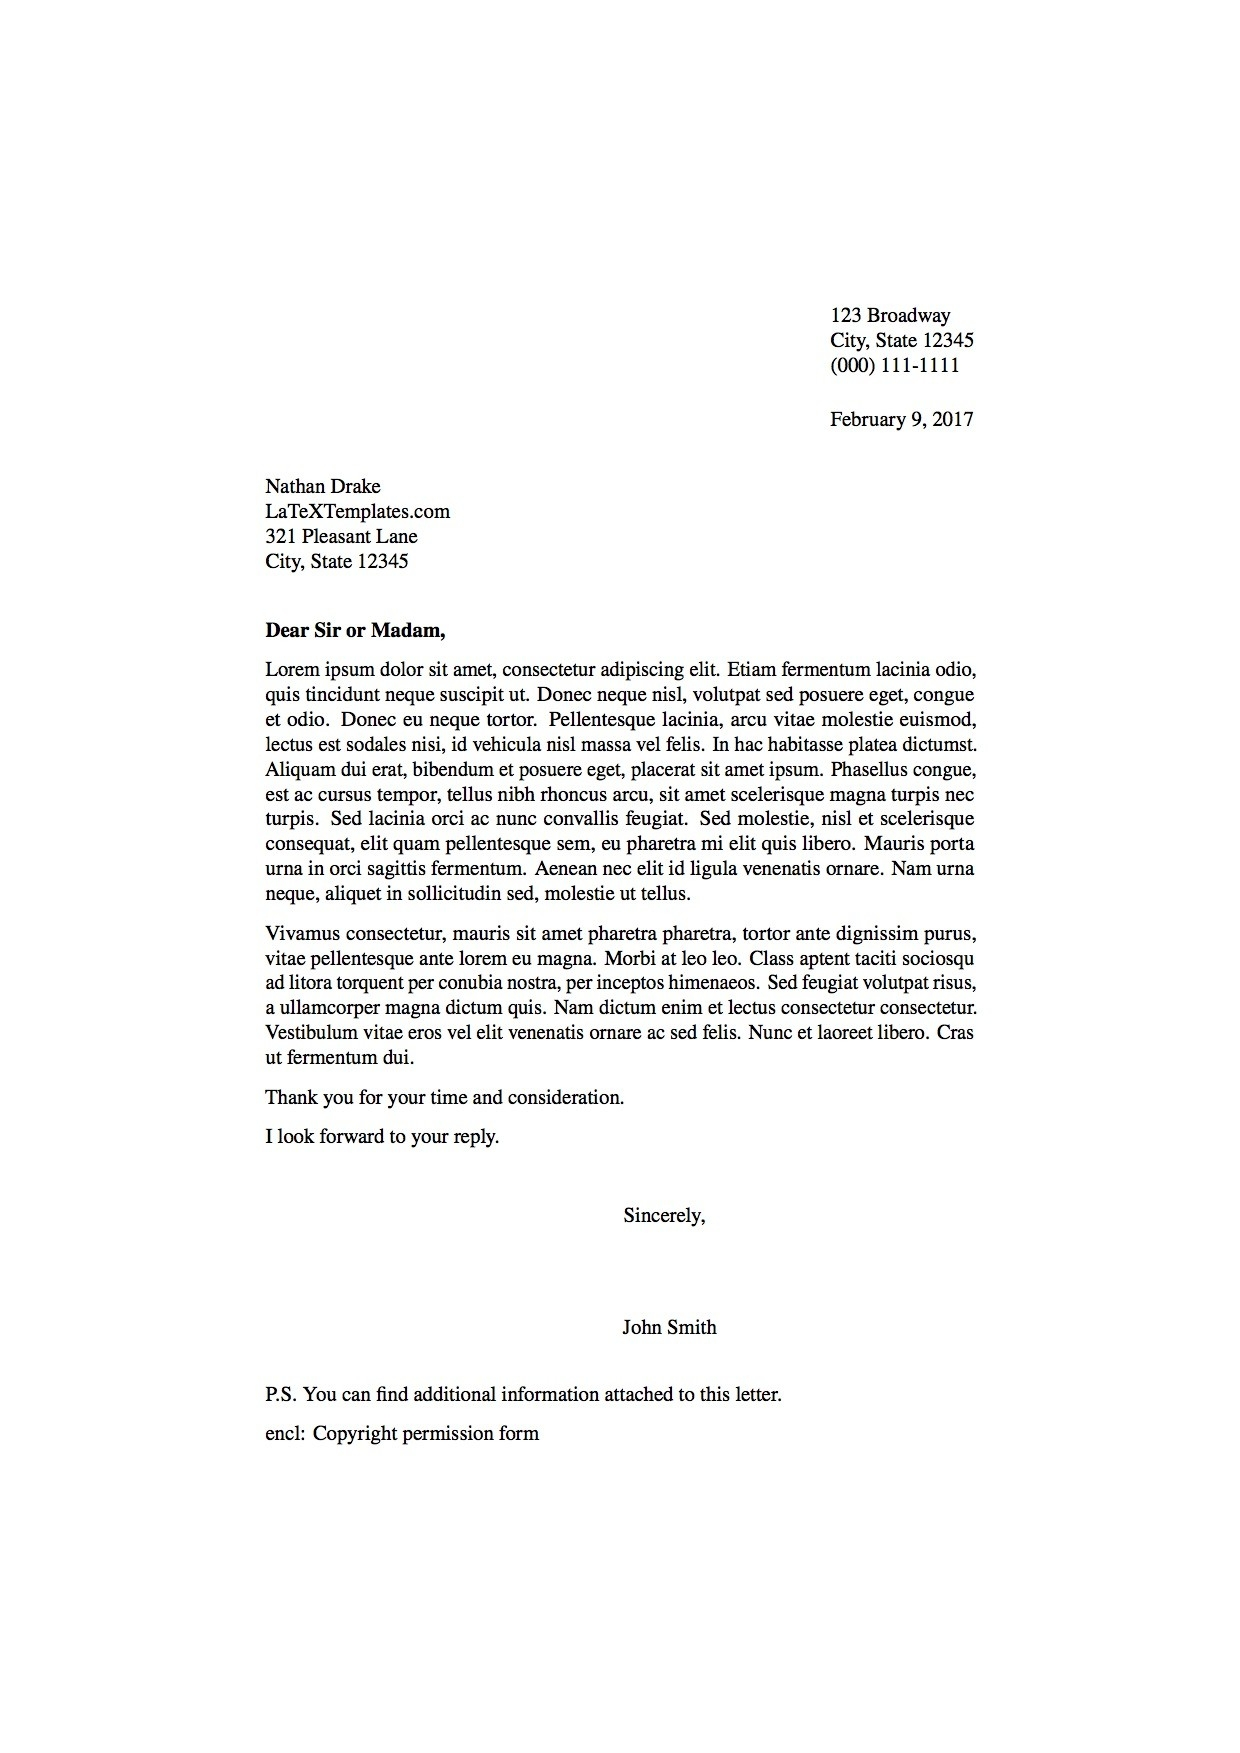 Latex Templates » Formal Letters for Formal Letter Format 19926